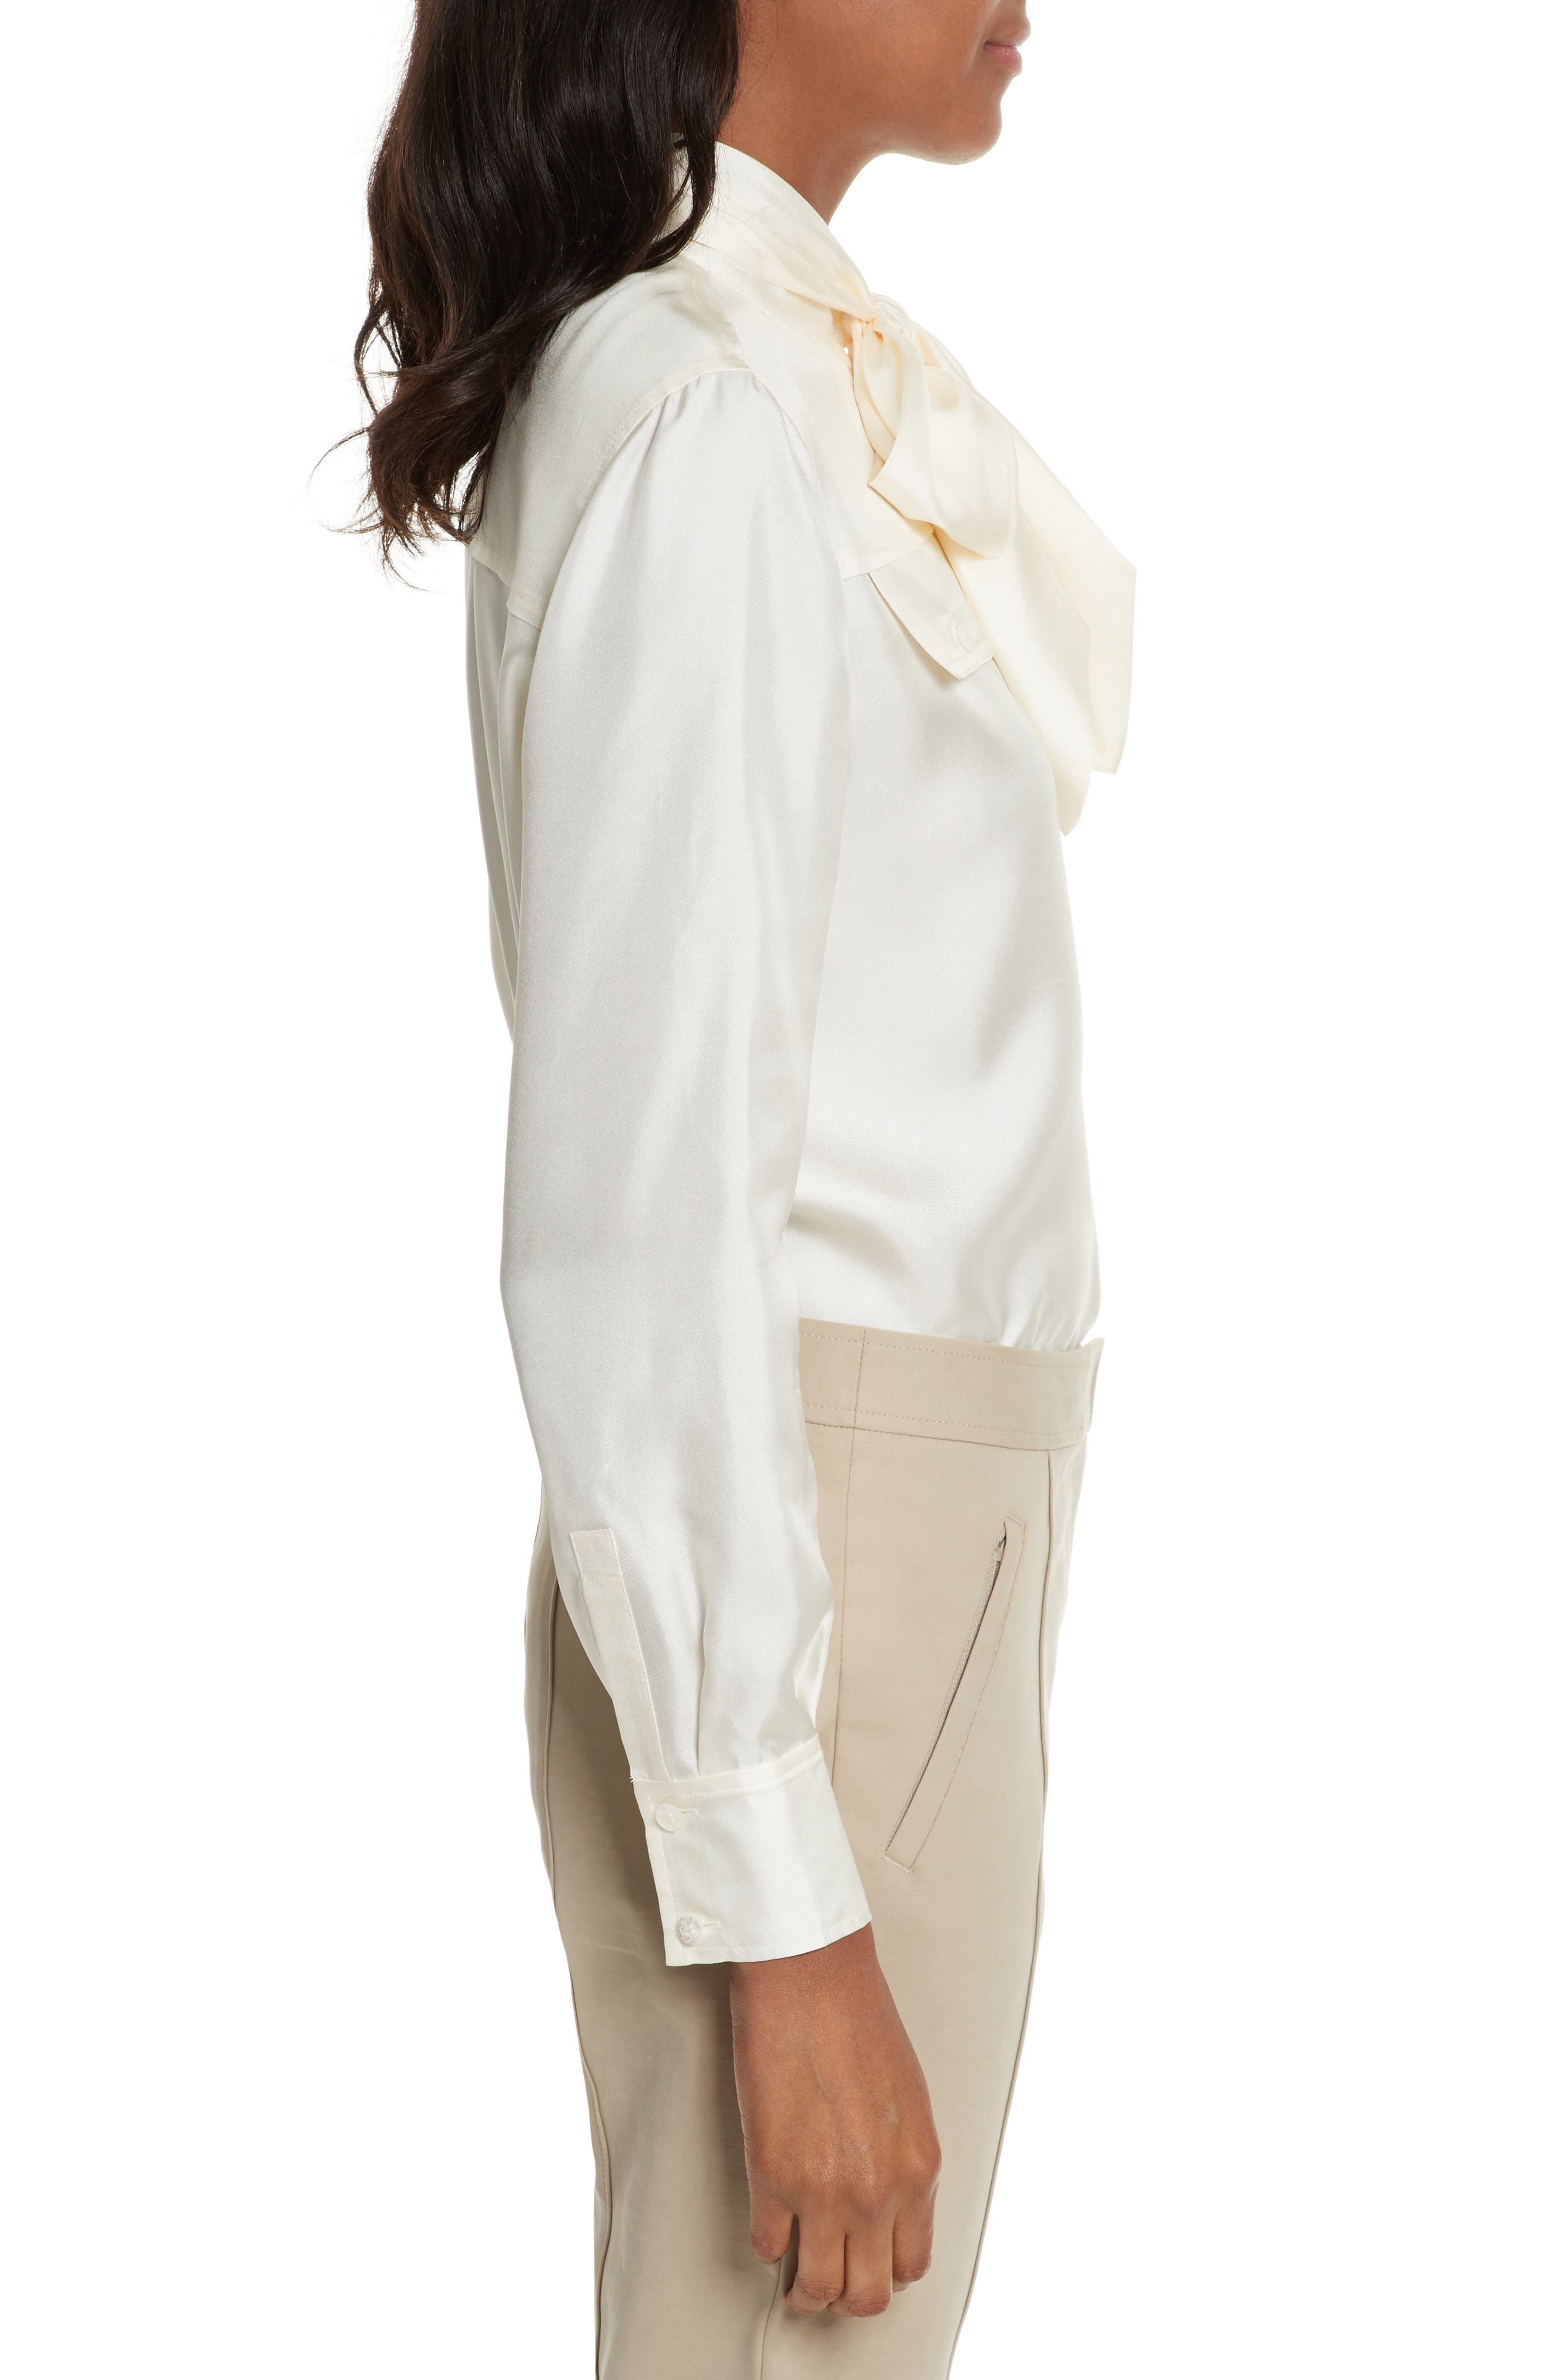 TORY BURCH,                             Holly Tie Neck Silk Blouse,                             Alternate thumbnail 3, color,                             904